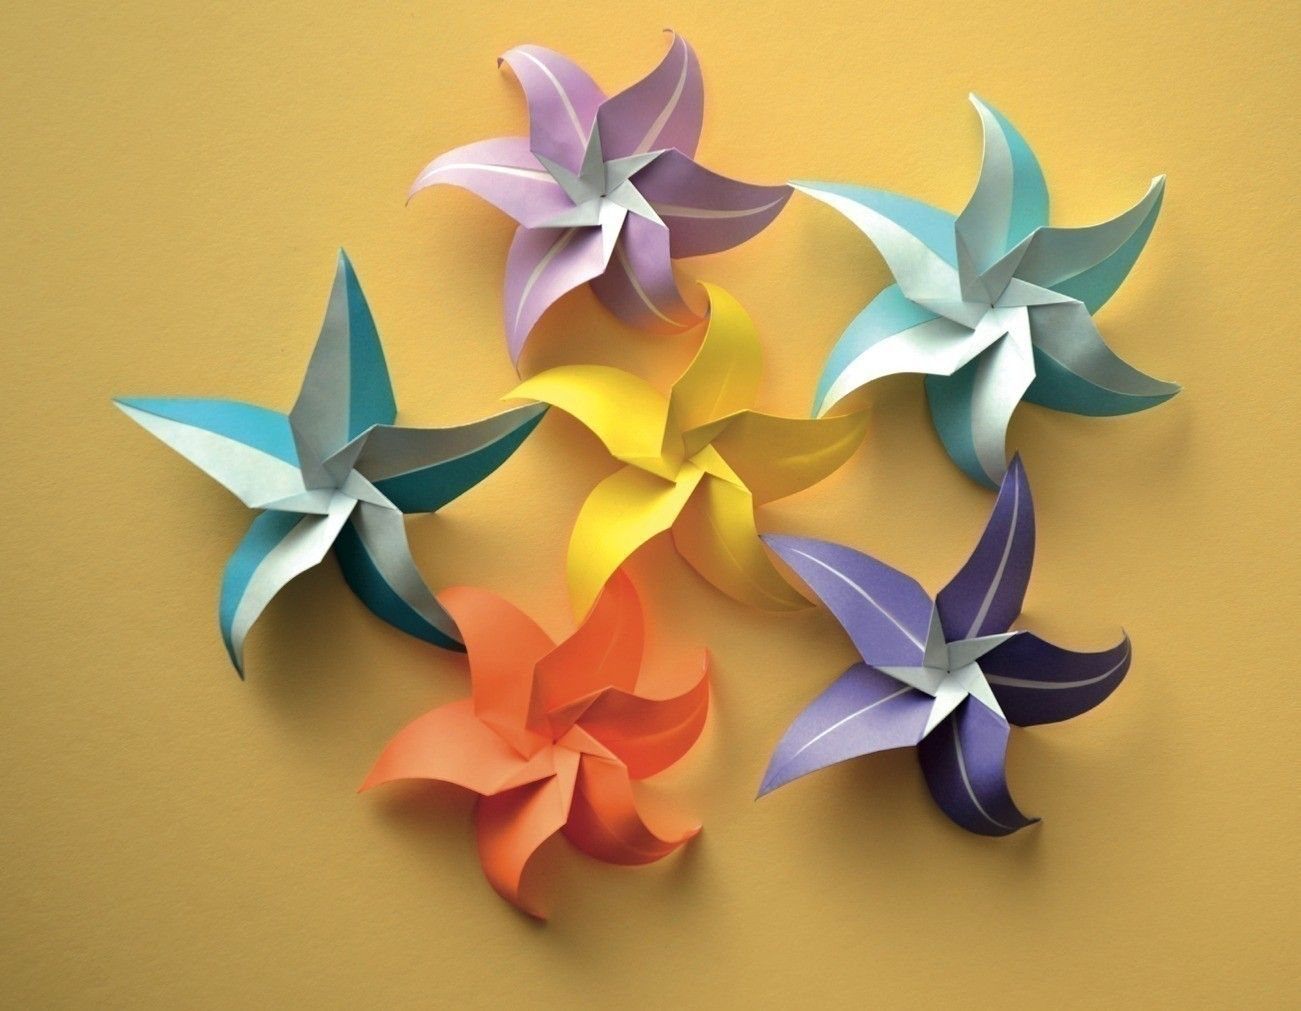 Star flowers stephies board pinterest origami tutorials and star flowers free tutorial with pictures on how to make an origami flower in under 20 minutes mightylinksfo